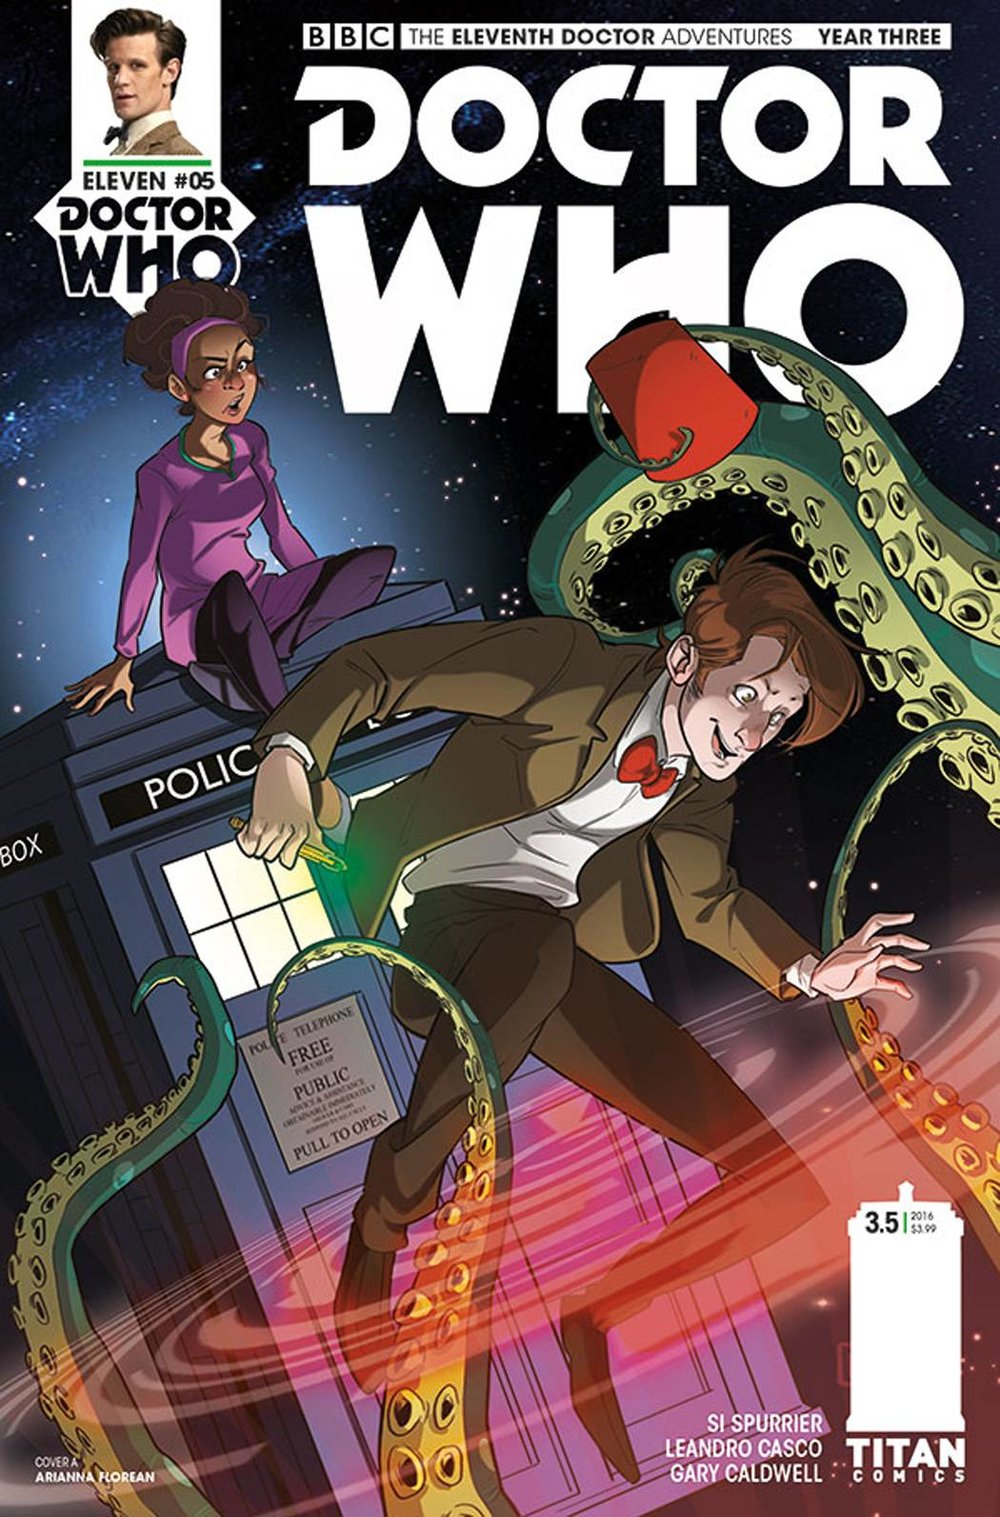 DOCTOR WHO 11TH YEAR THREE 5 CVR A FLOREAN.jpg